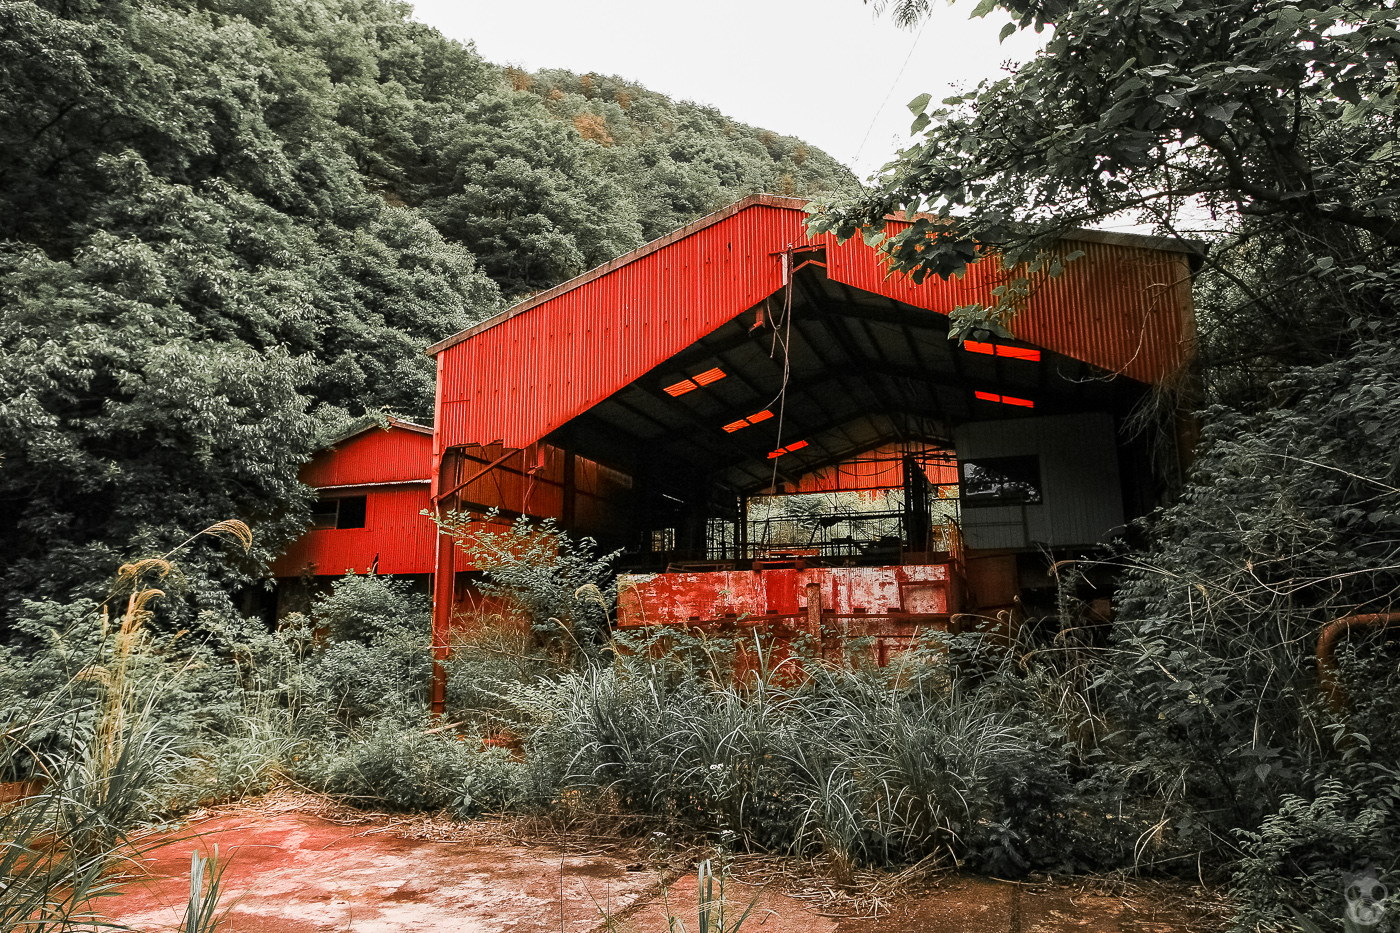 The Red Abandoned Factory  弁柄工場 廃墟